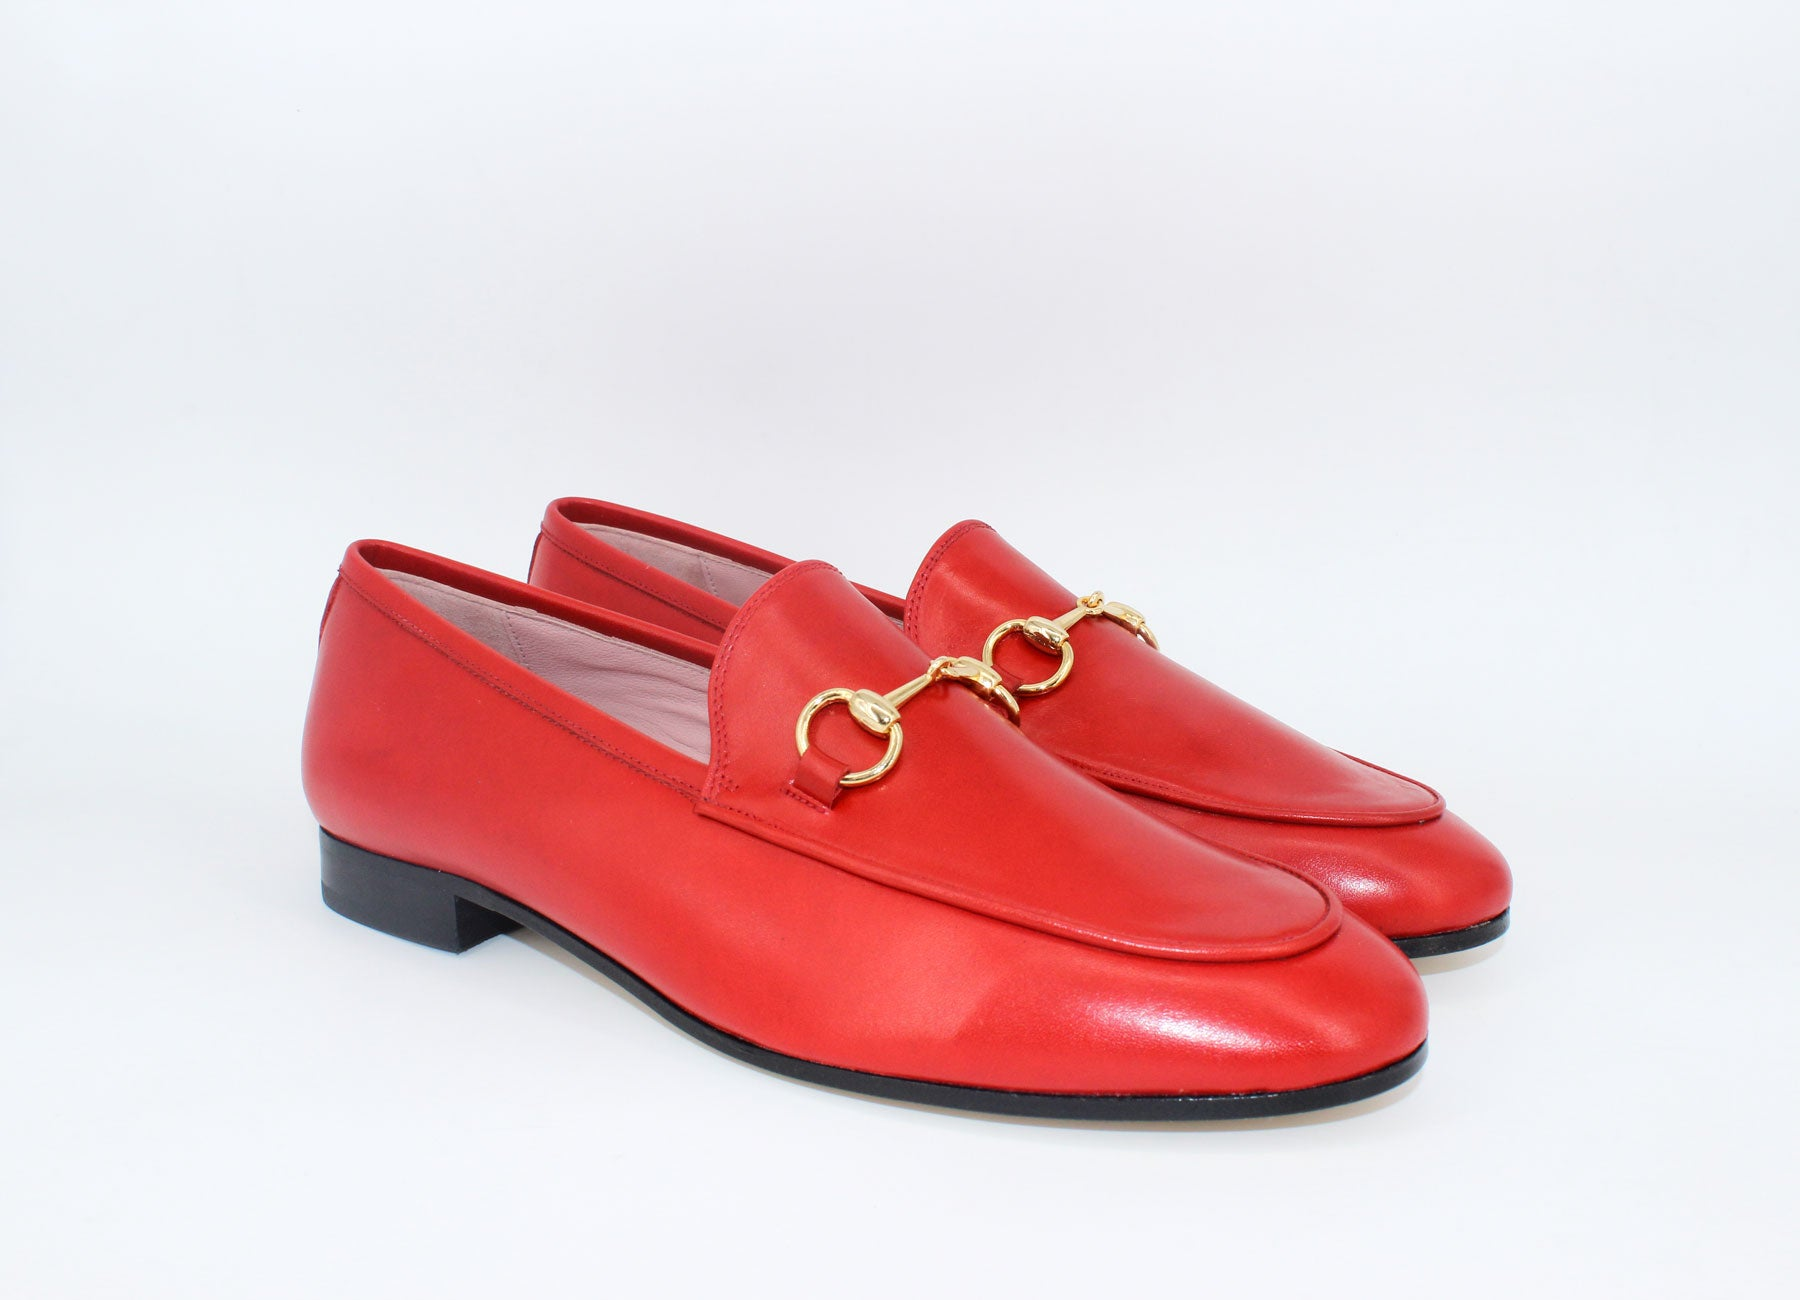 MILAN RED / LEATHER SOLE